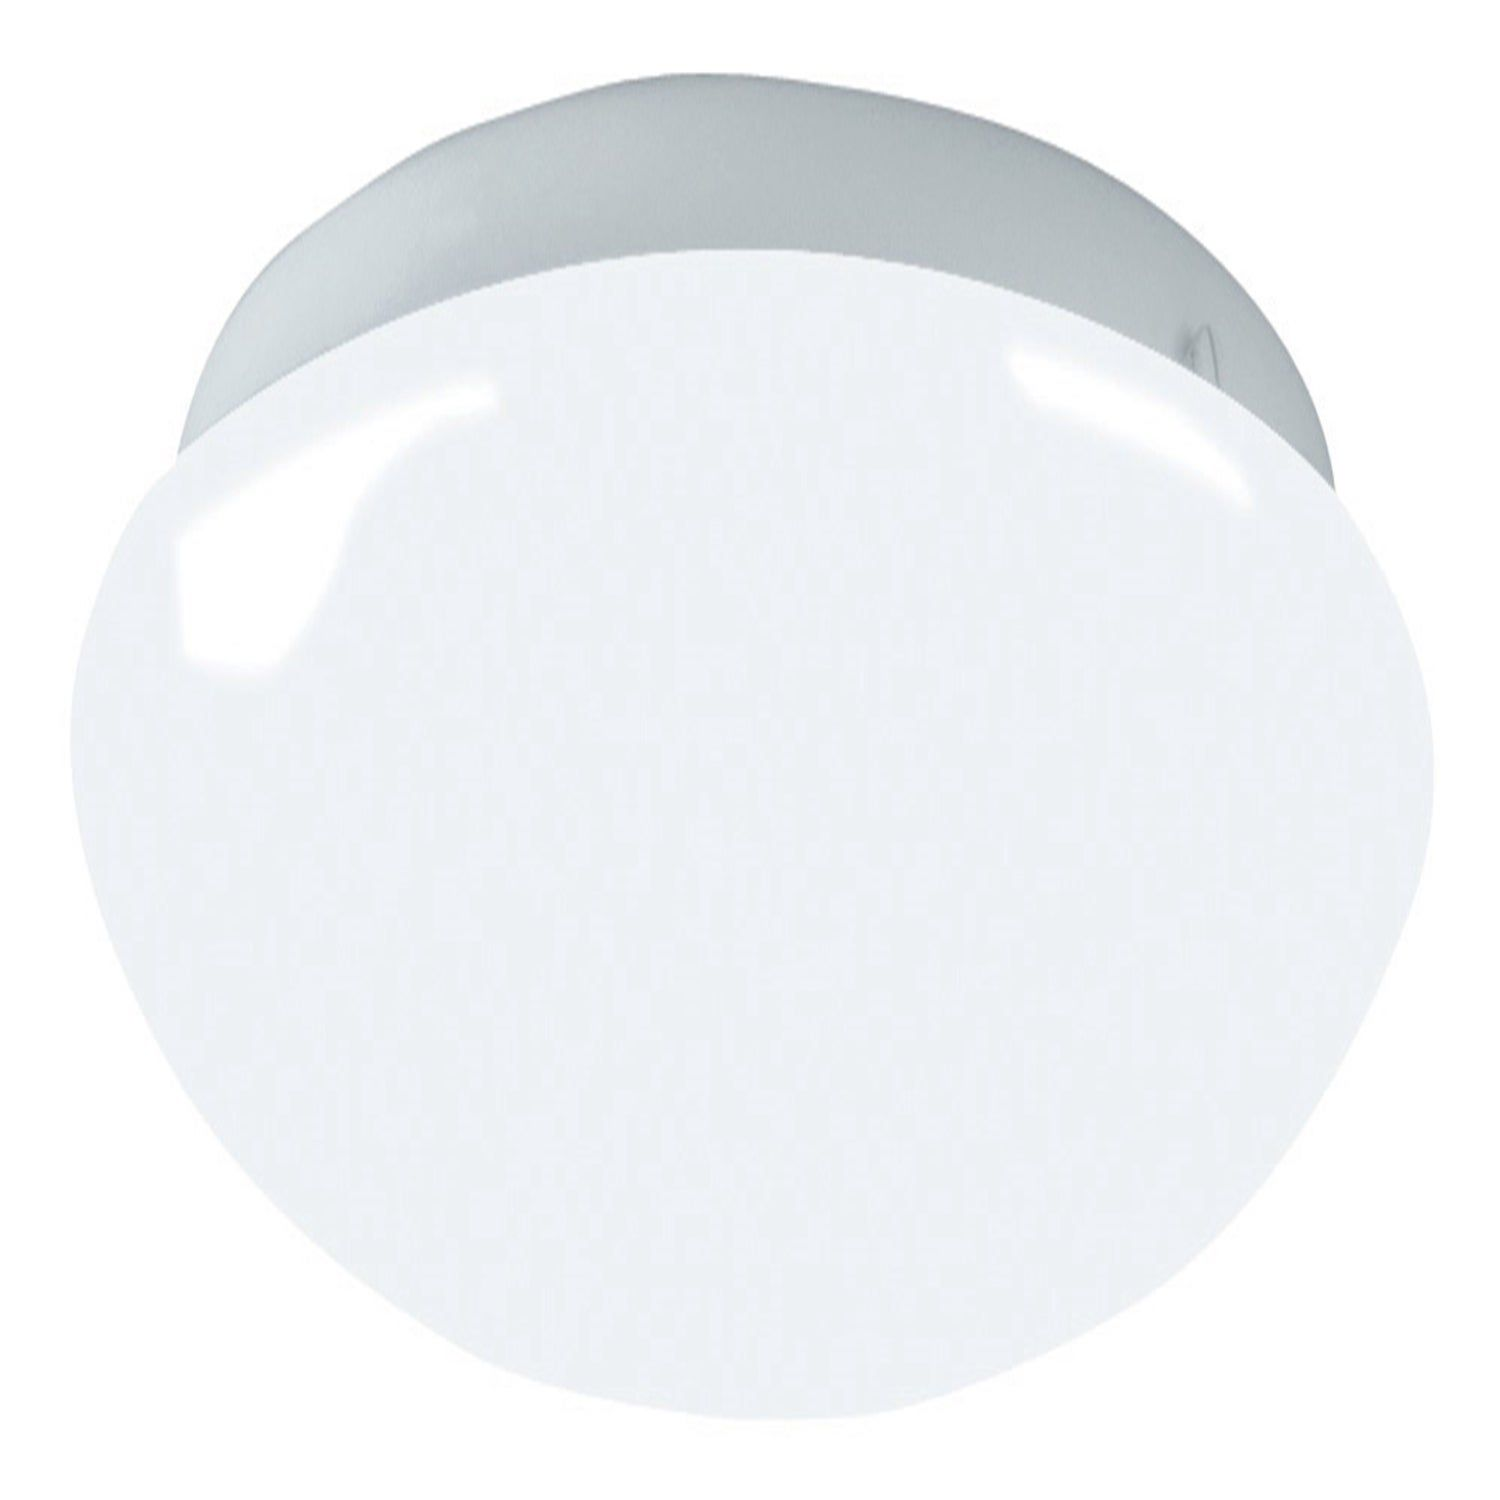 Afx Camden 11 Inch White Led 3000k Flush Mount White Acrylic Shade Led Flush Mount White Lead White Acrylics